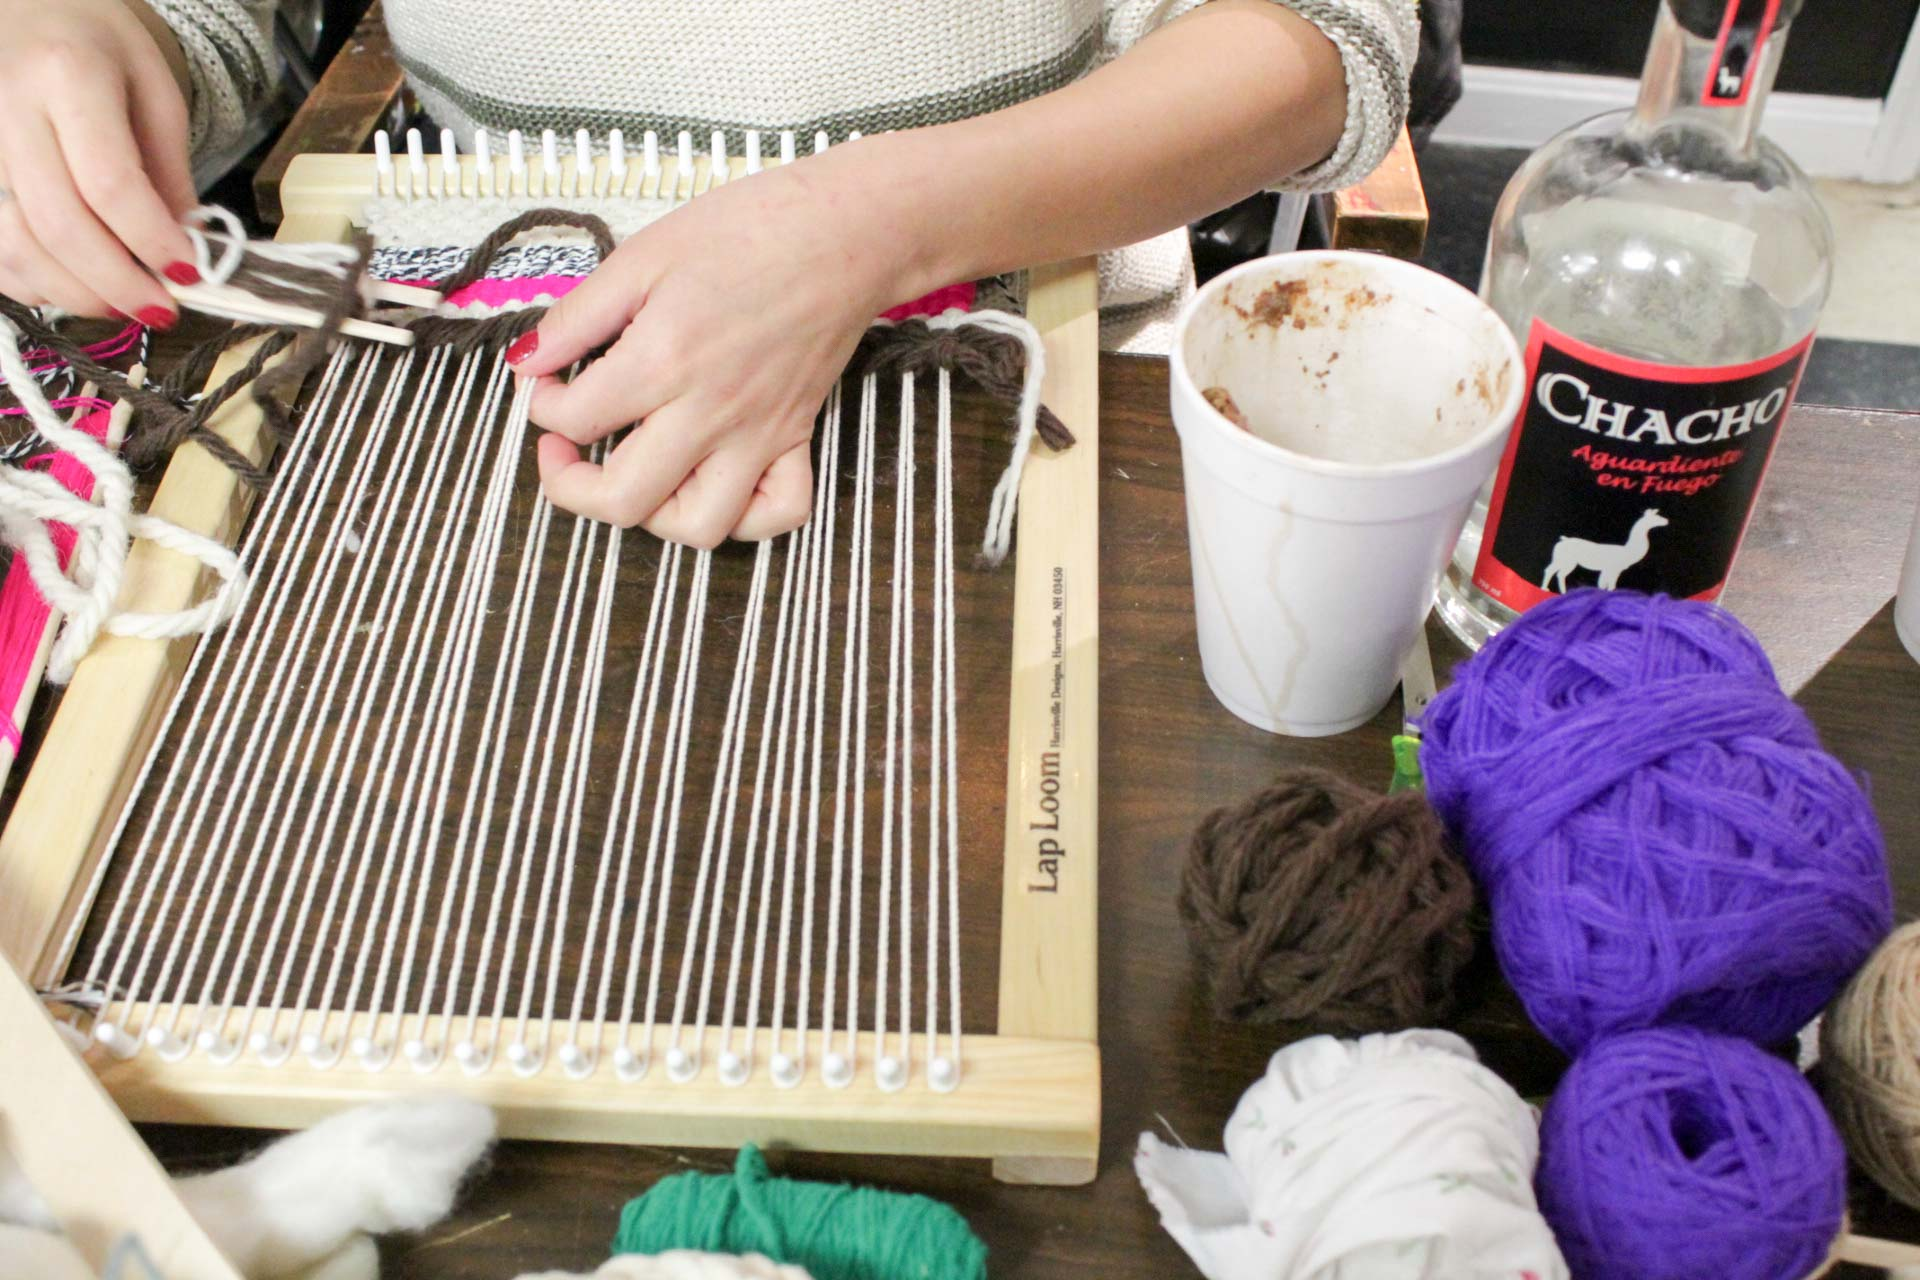 2-2016-mexican-hot-chocolate-tapestry-weaving (56 of 59).jpg